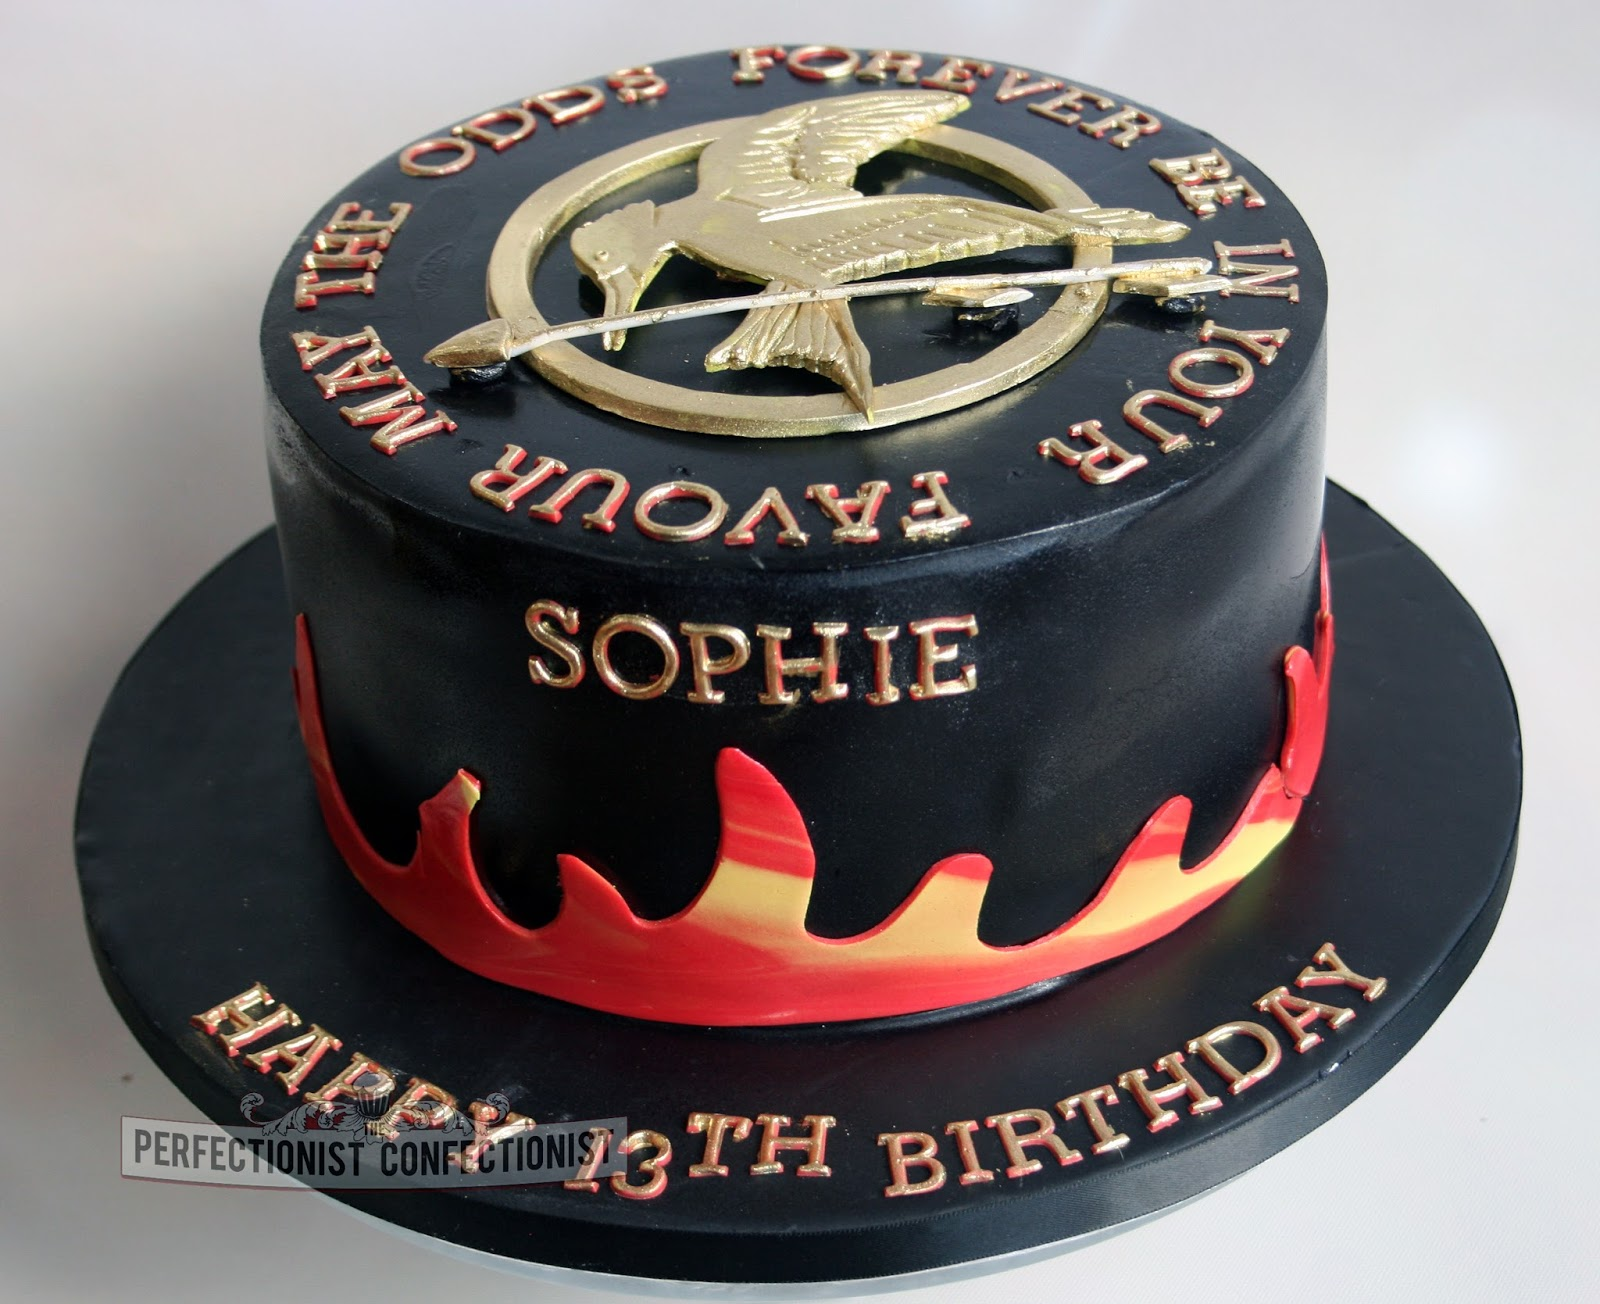 The Perfectionist Confectionist Sophie Hunger Games Birthday Cake